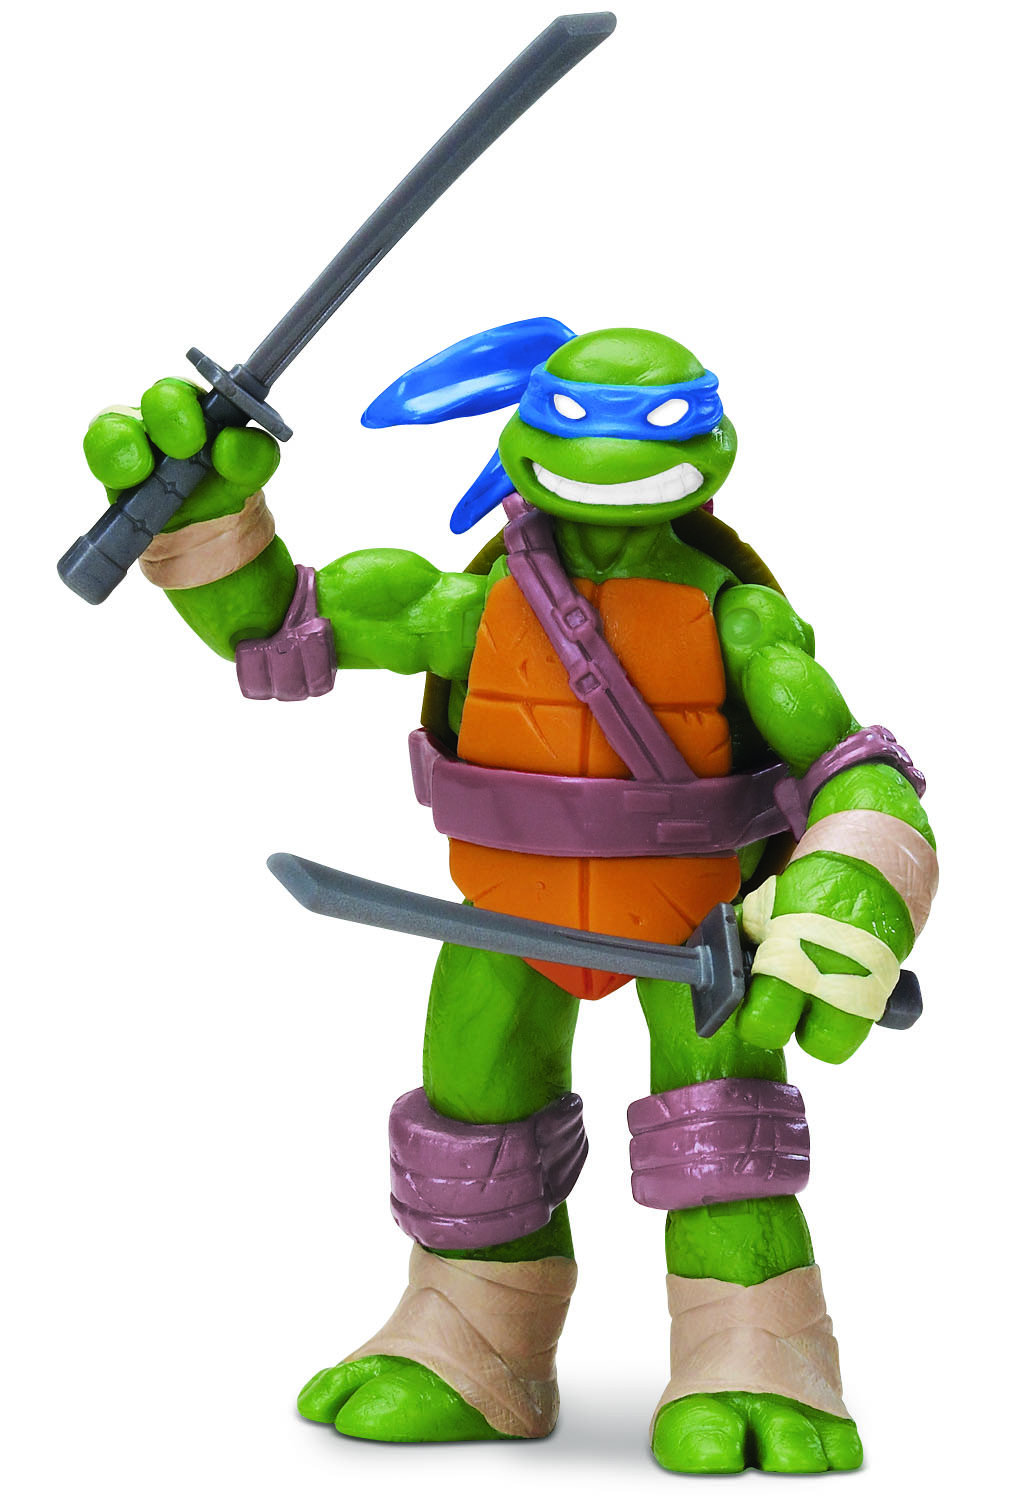 The Complete History of Teenage Mutant Ninja Turtles